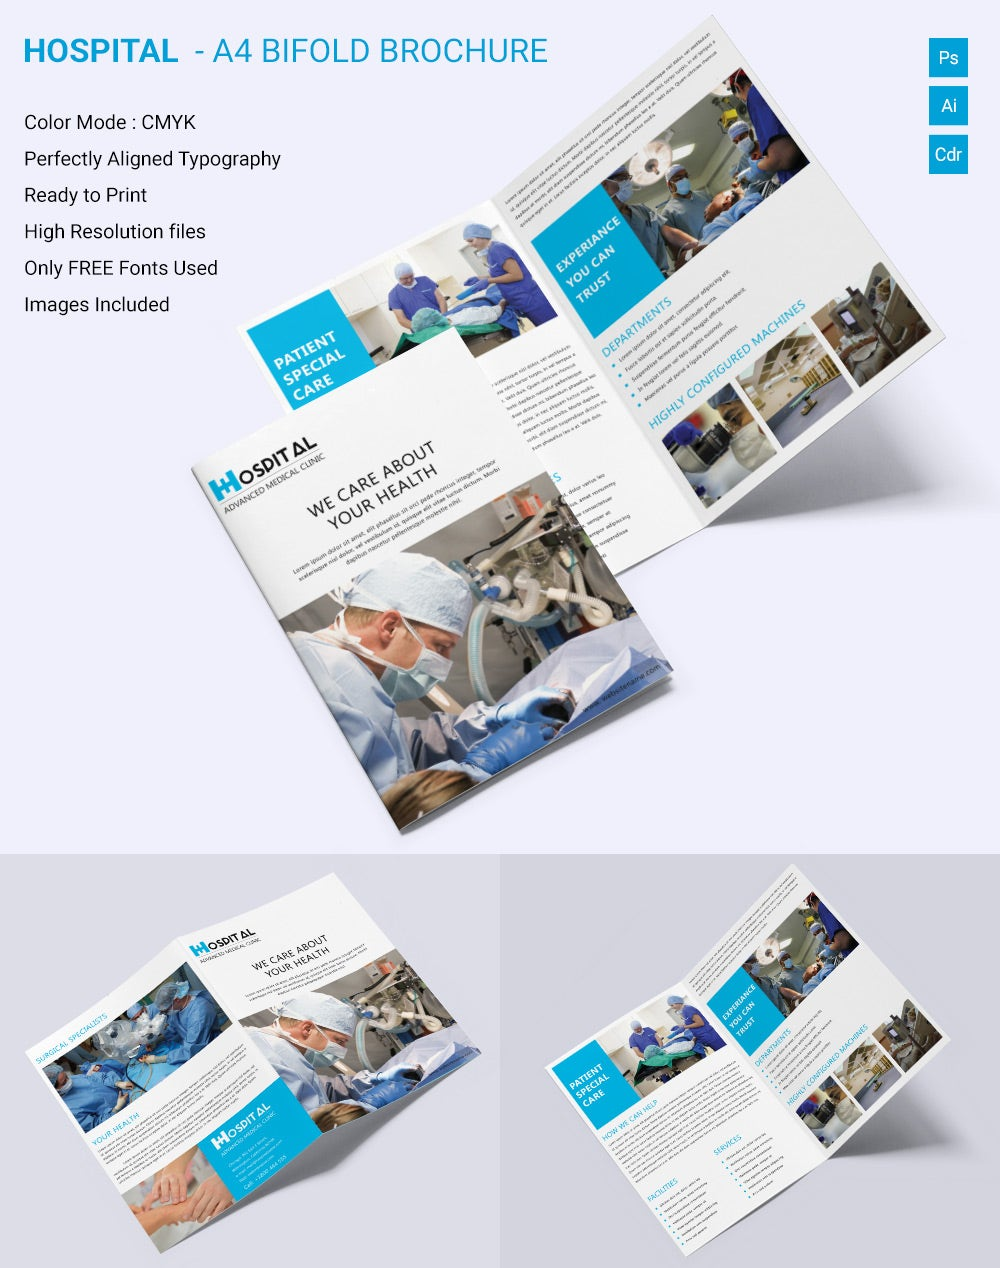 Medical Brochure Template 39 Free PSD AI Vector EPS InDesign – Hospital Flyer Template